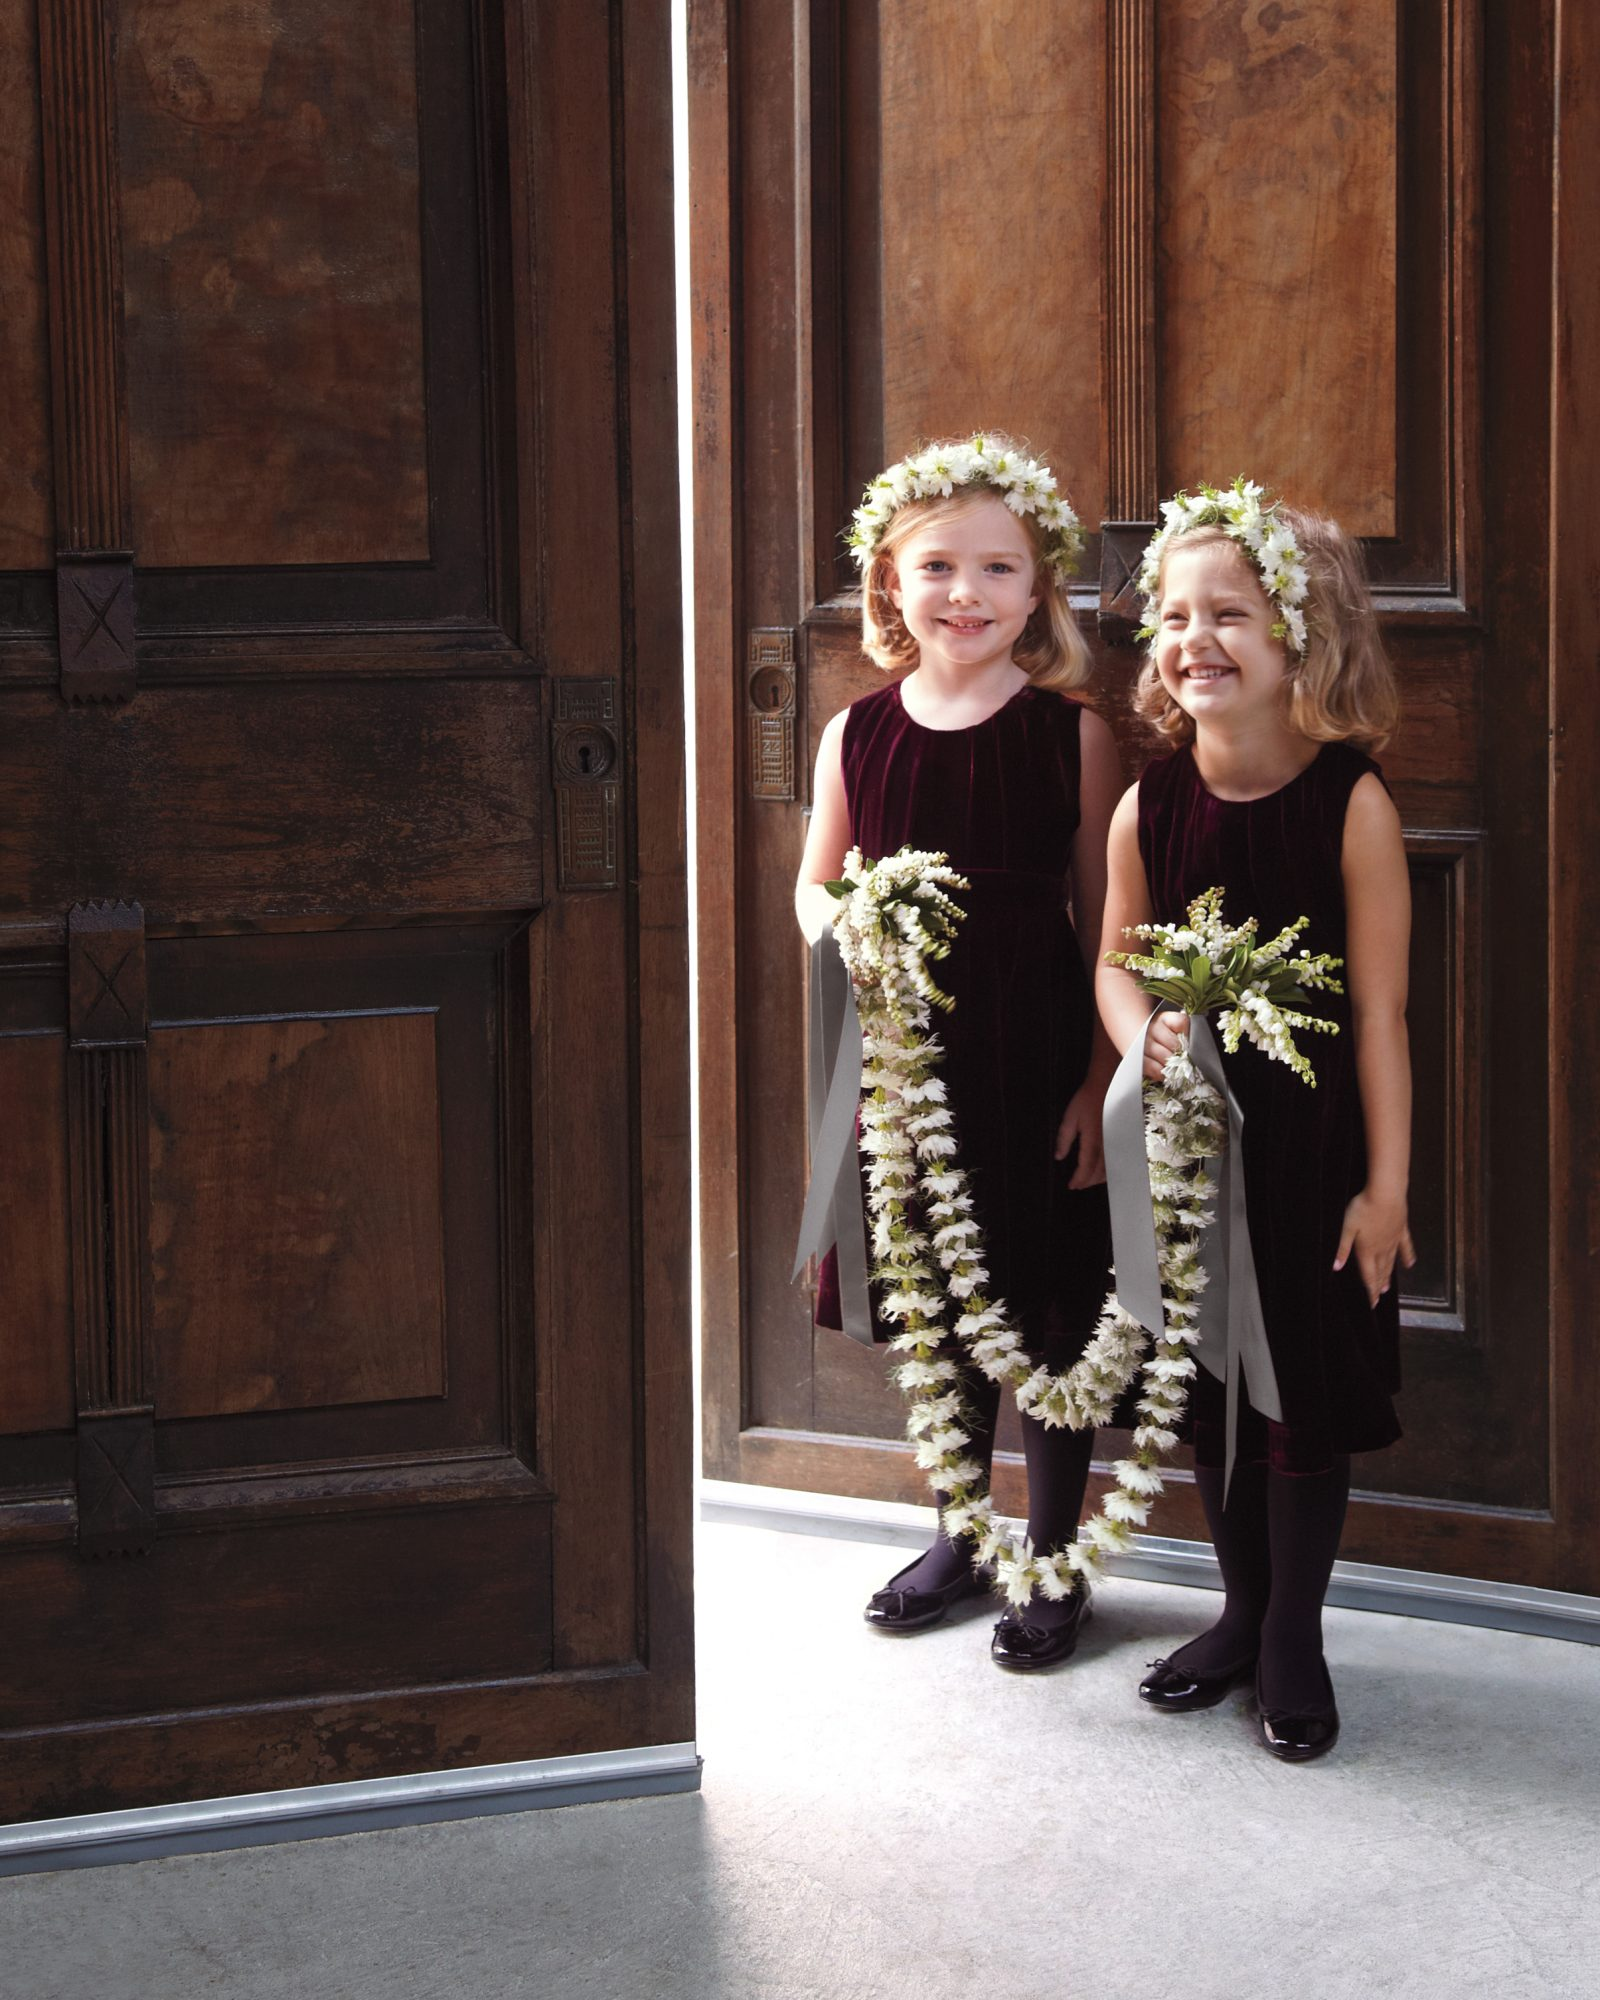 flower-girls-mwd109254.jpg